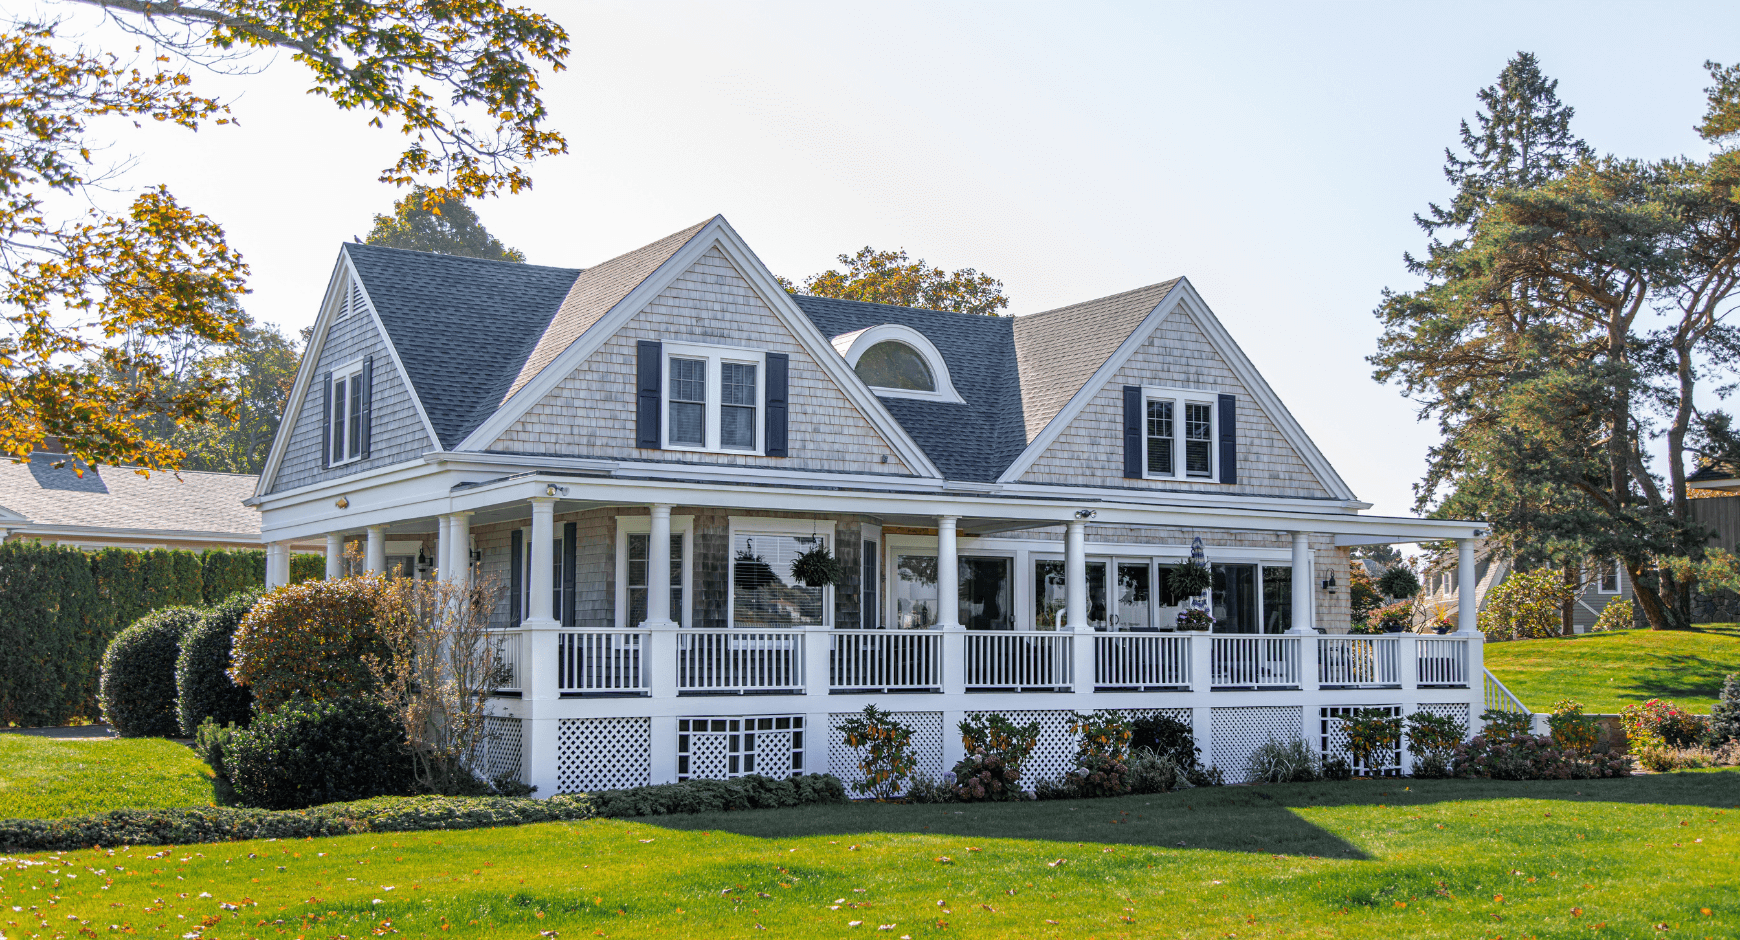 Beautiful home with eye-catching exterior window trim